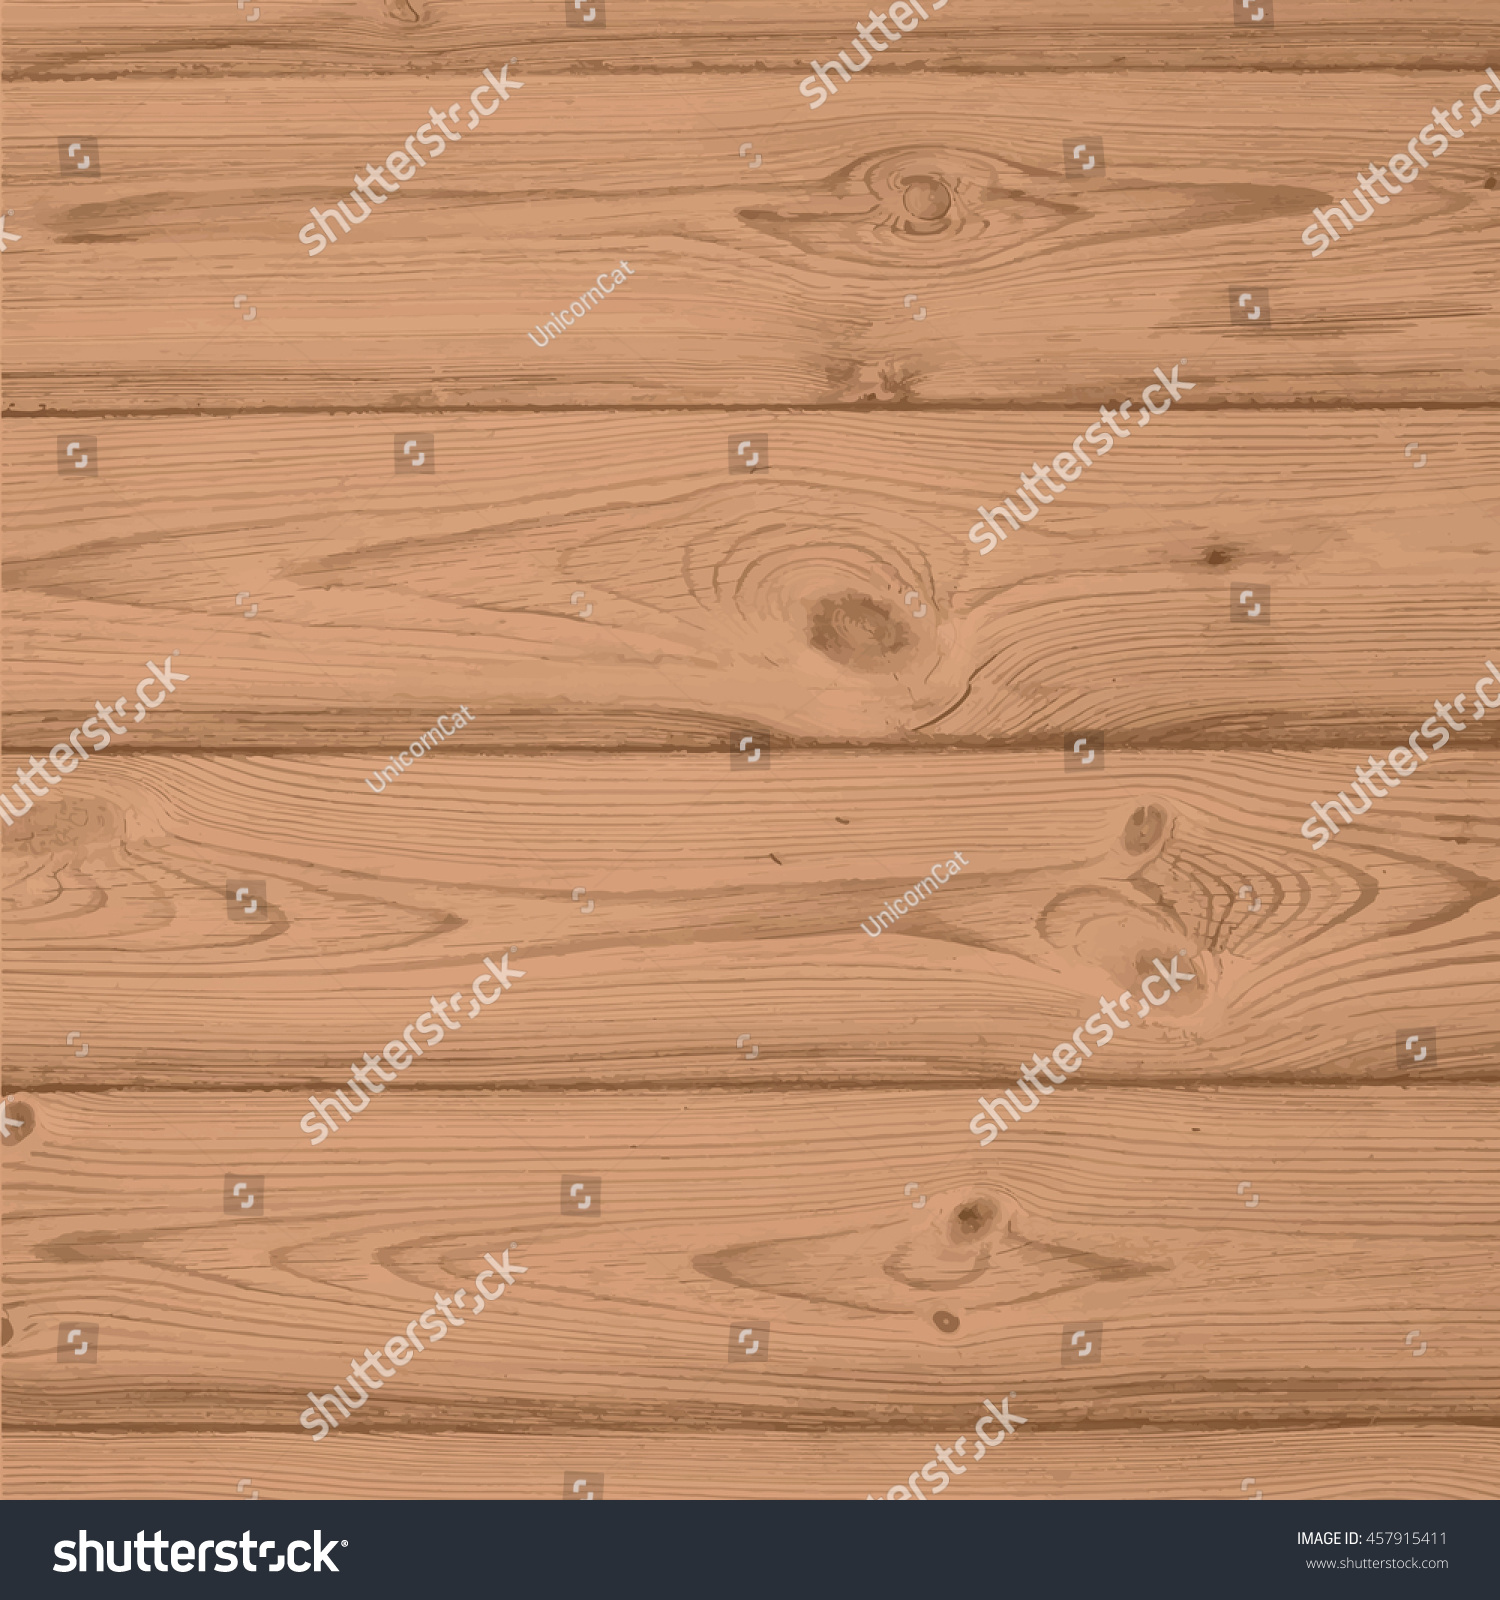 Texture Of Light Wood Vector Horizontal Wooden Panel